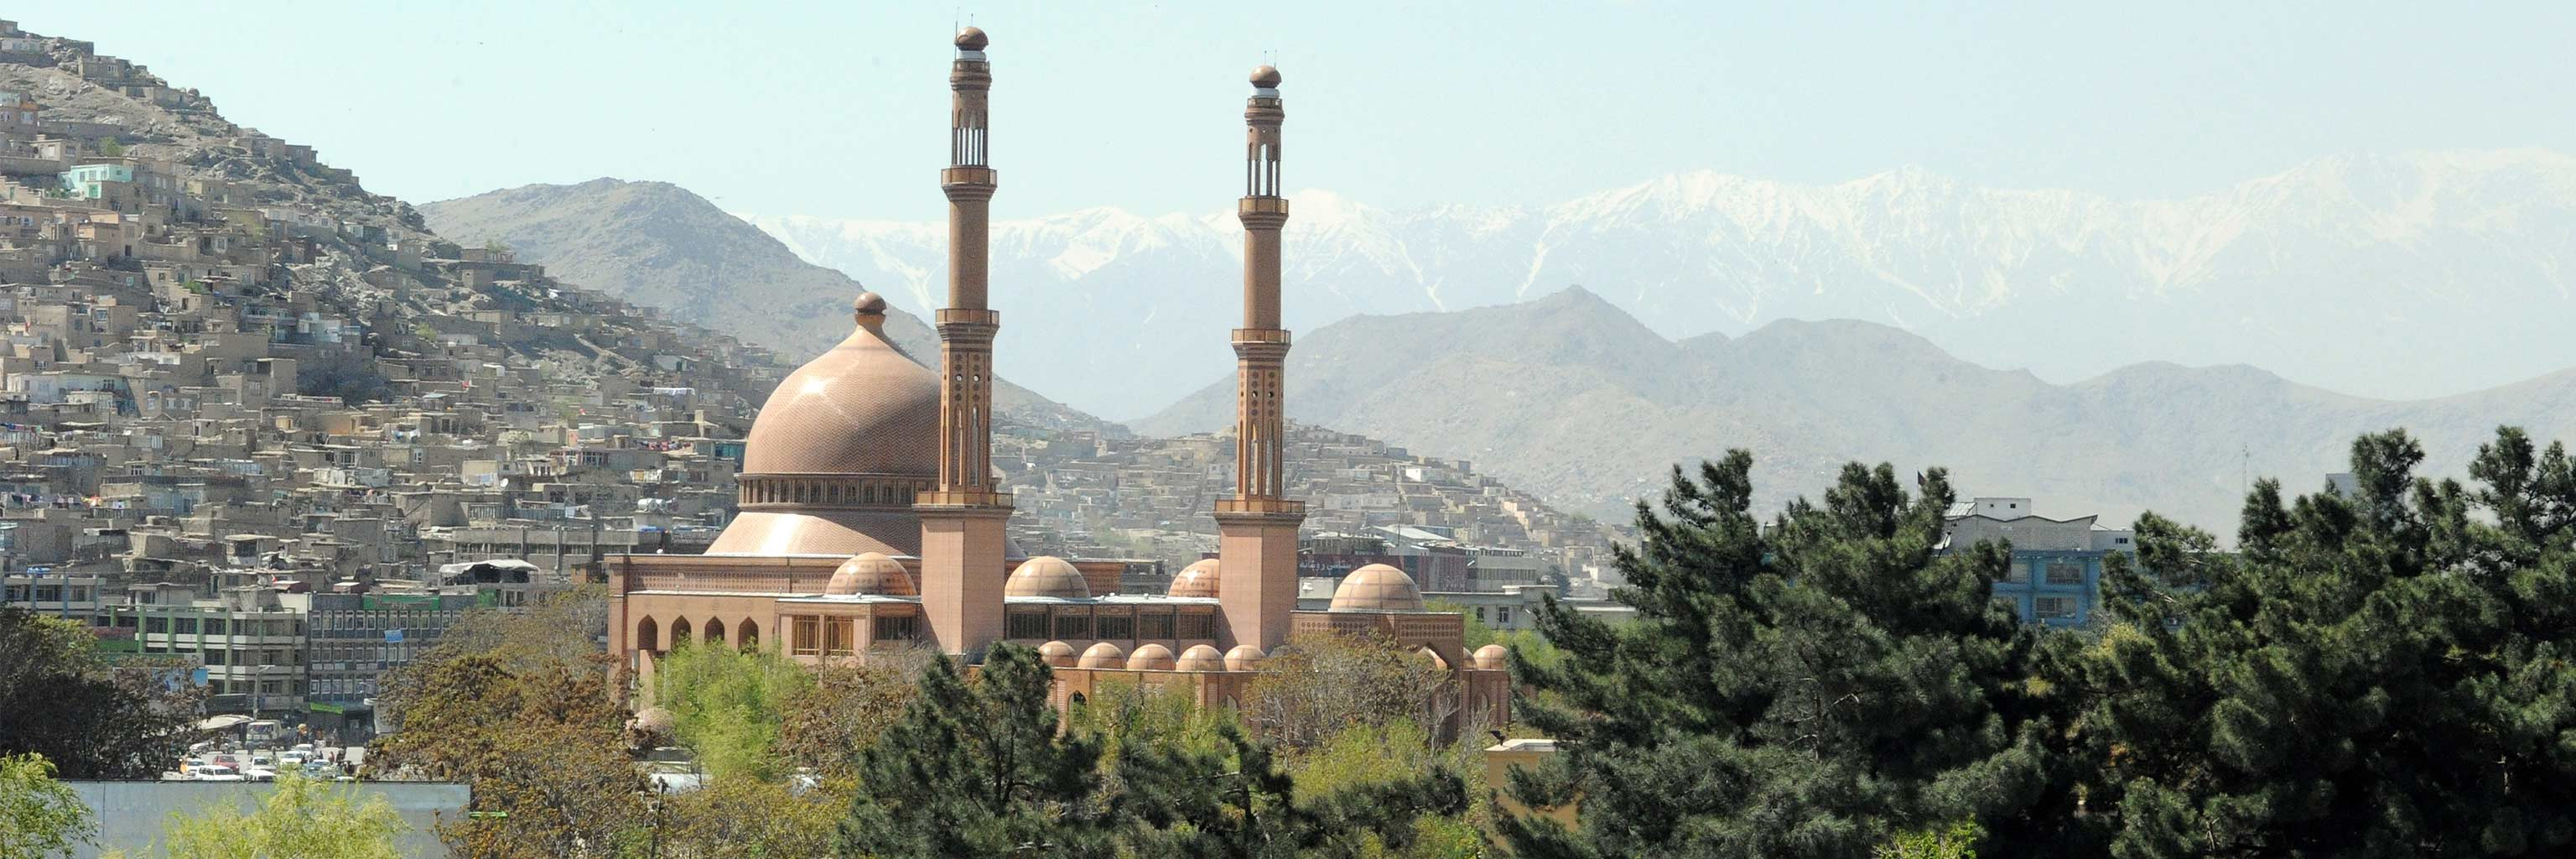 A view of the Haji Abdul Rahman Mosque in Kabul, which is the largest in Afghanistan